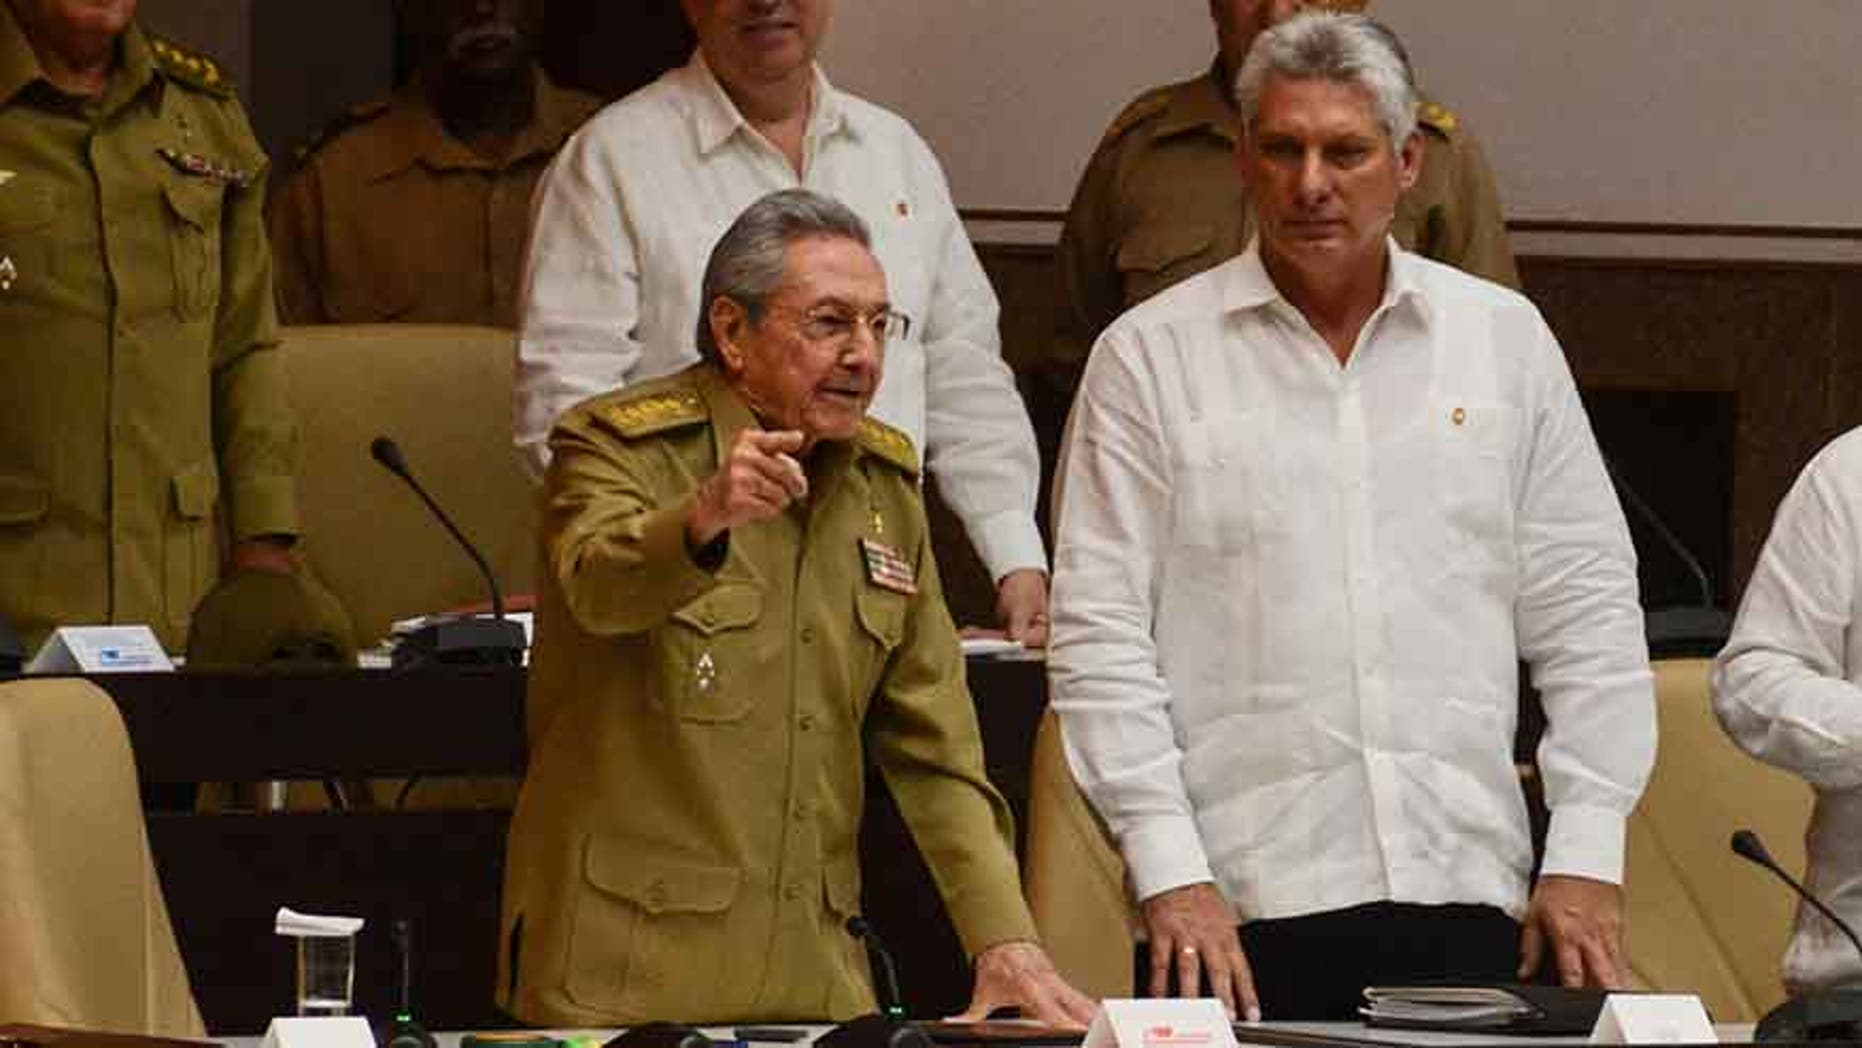 Cuba's President Raul Castro and First Vice-President Miguel Diaz-Canel during an extraordinary session of the National Assembly, in Havana, Cuba June 1, 2017.